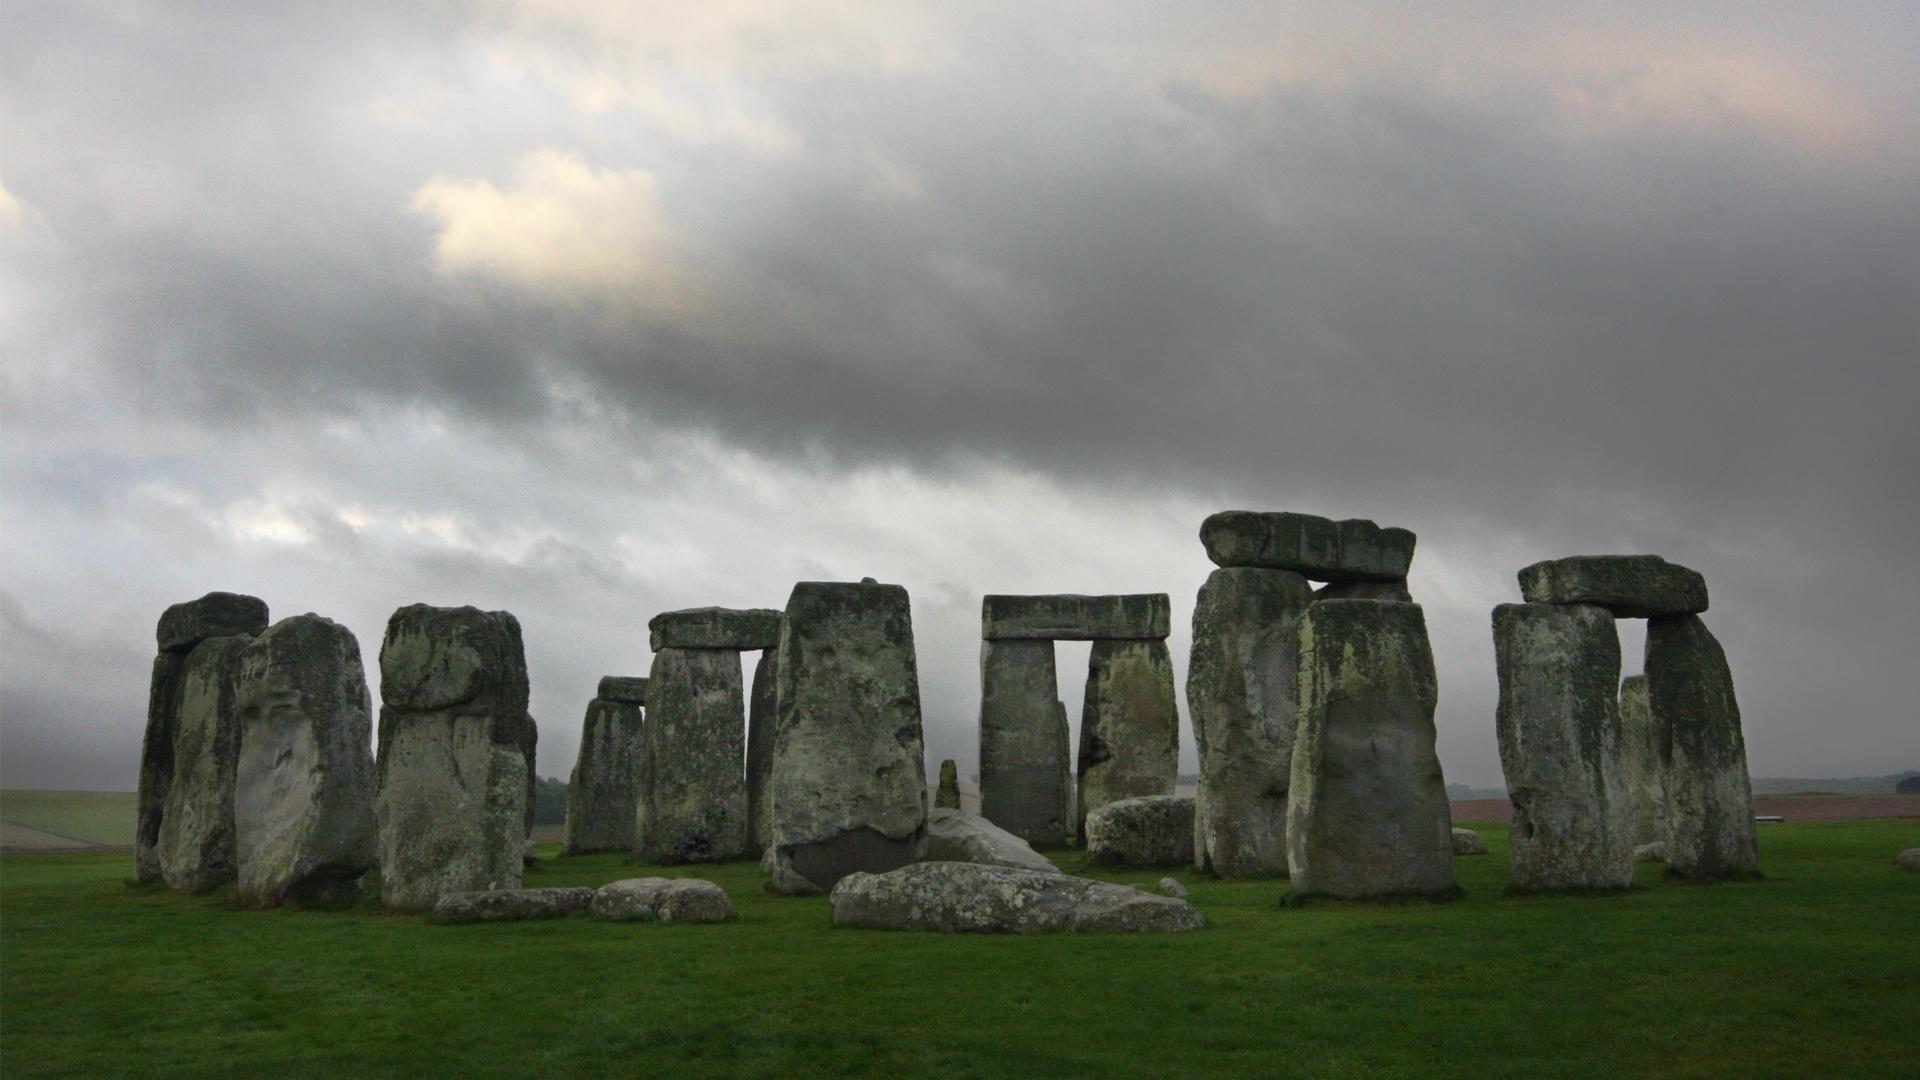 Adults dating are we gonna do stonehenge map of area